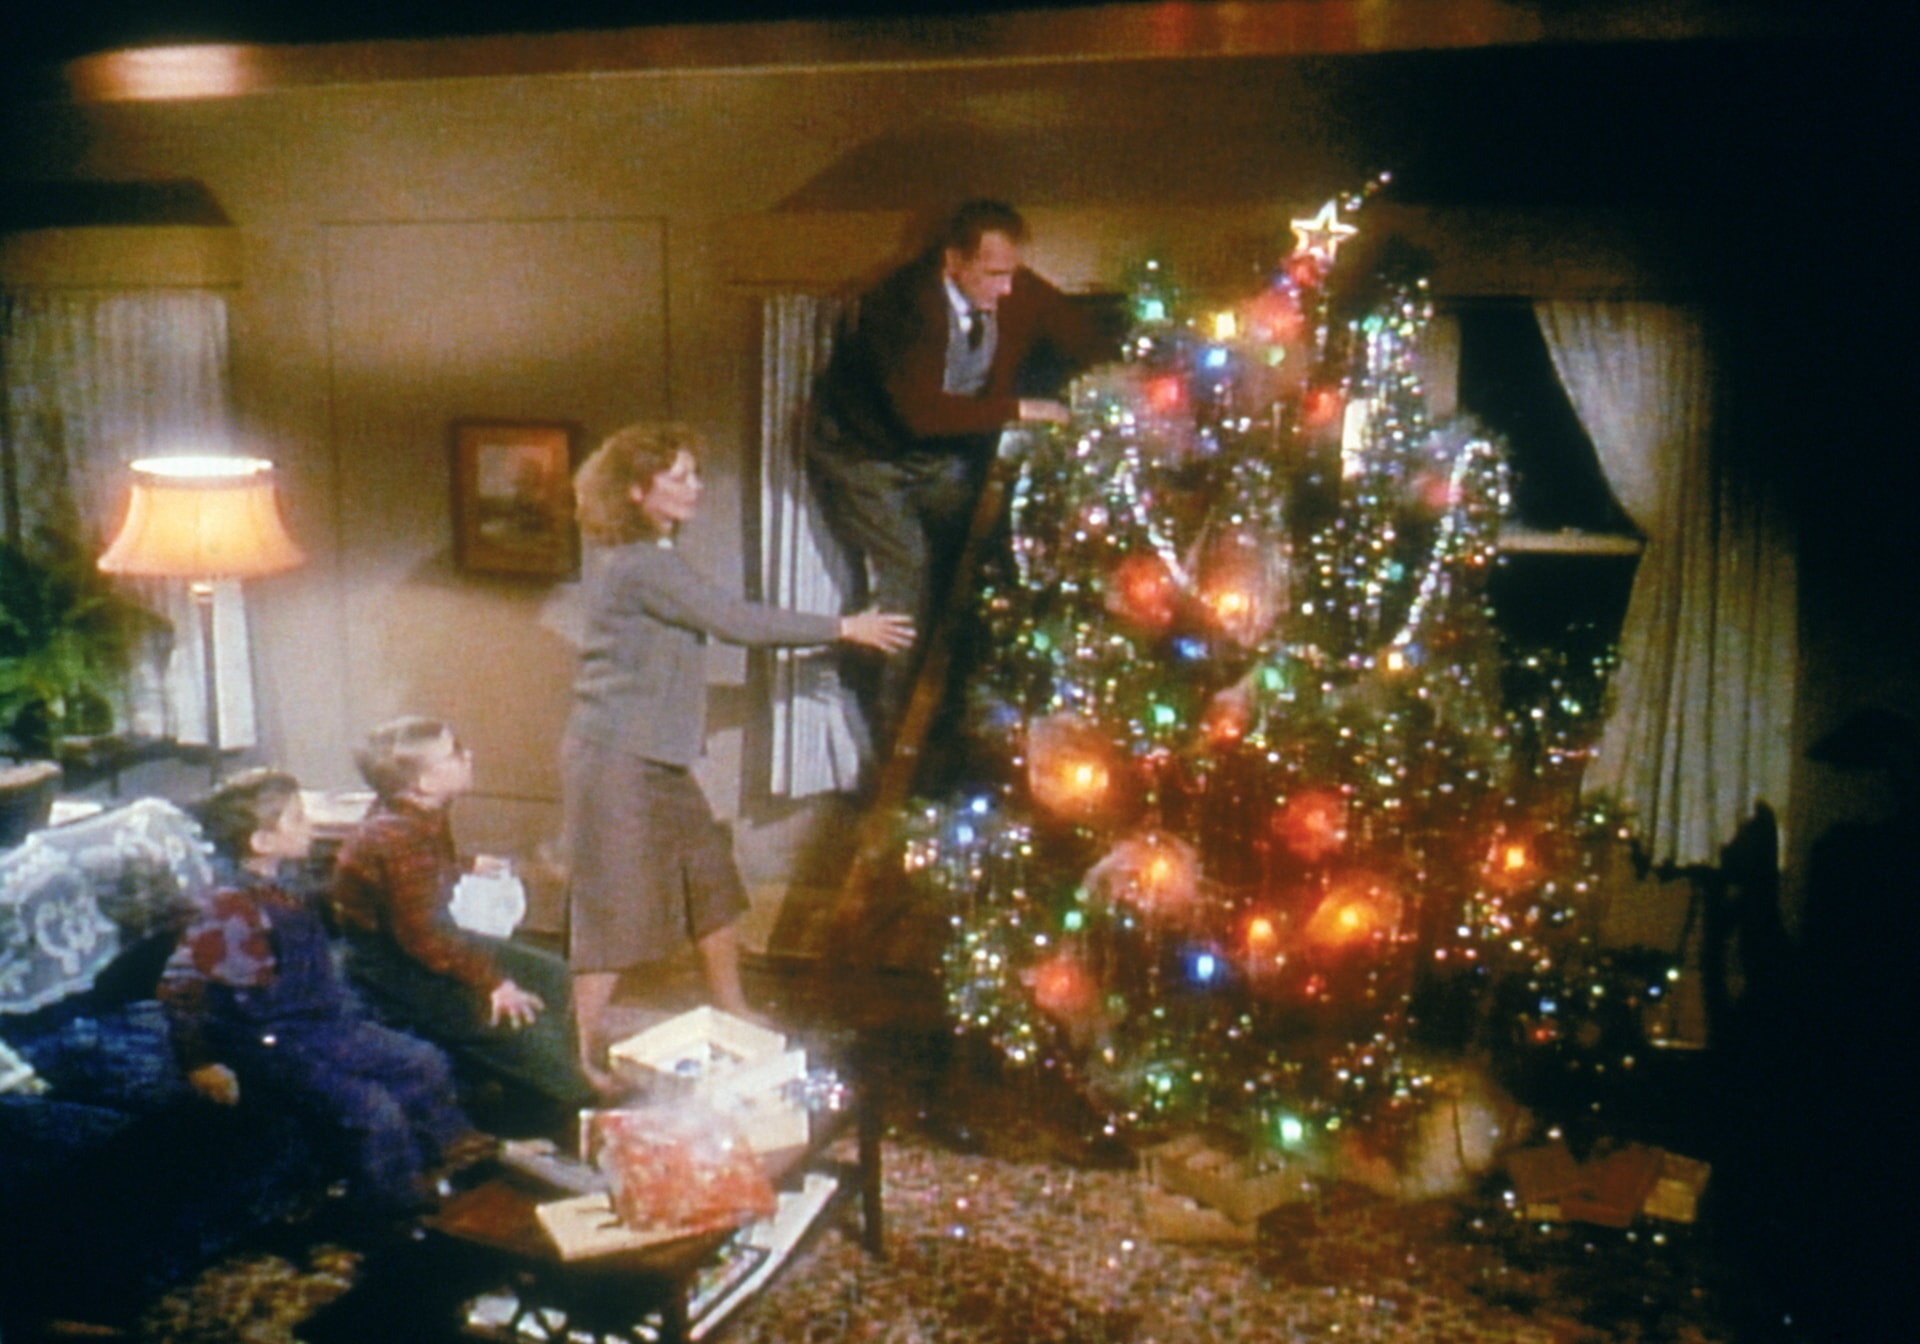 Old Man Parket putting star on Christmas tree with family watching